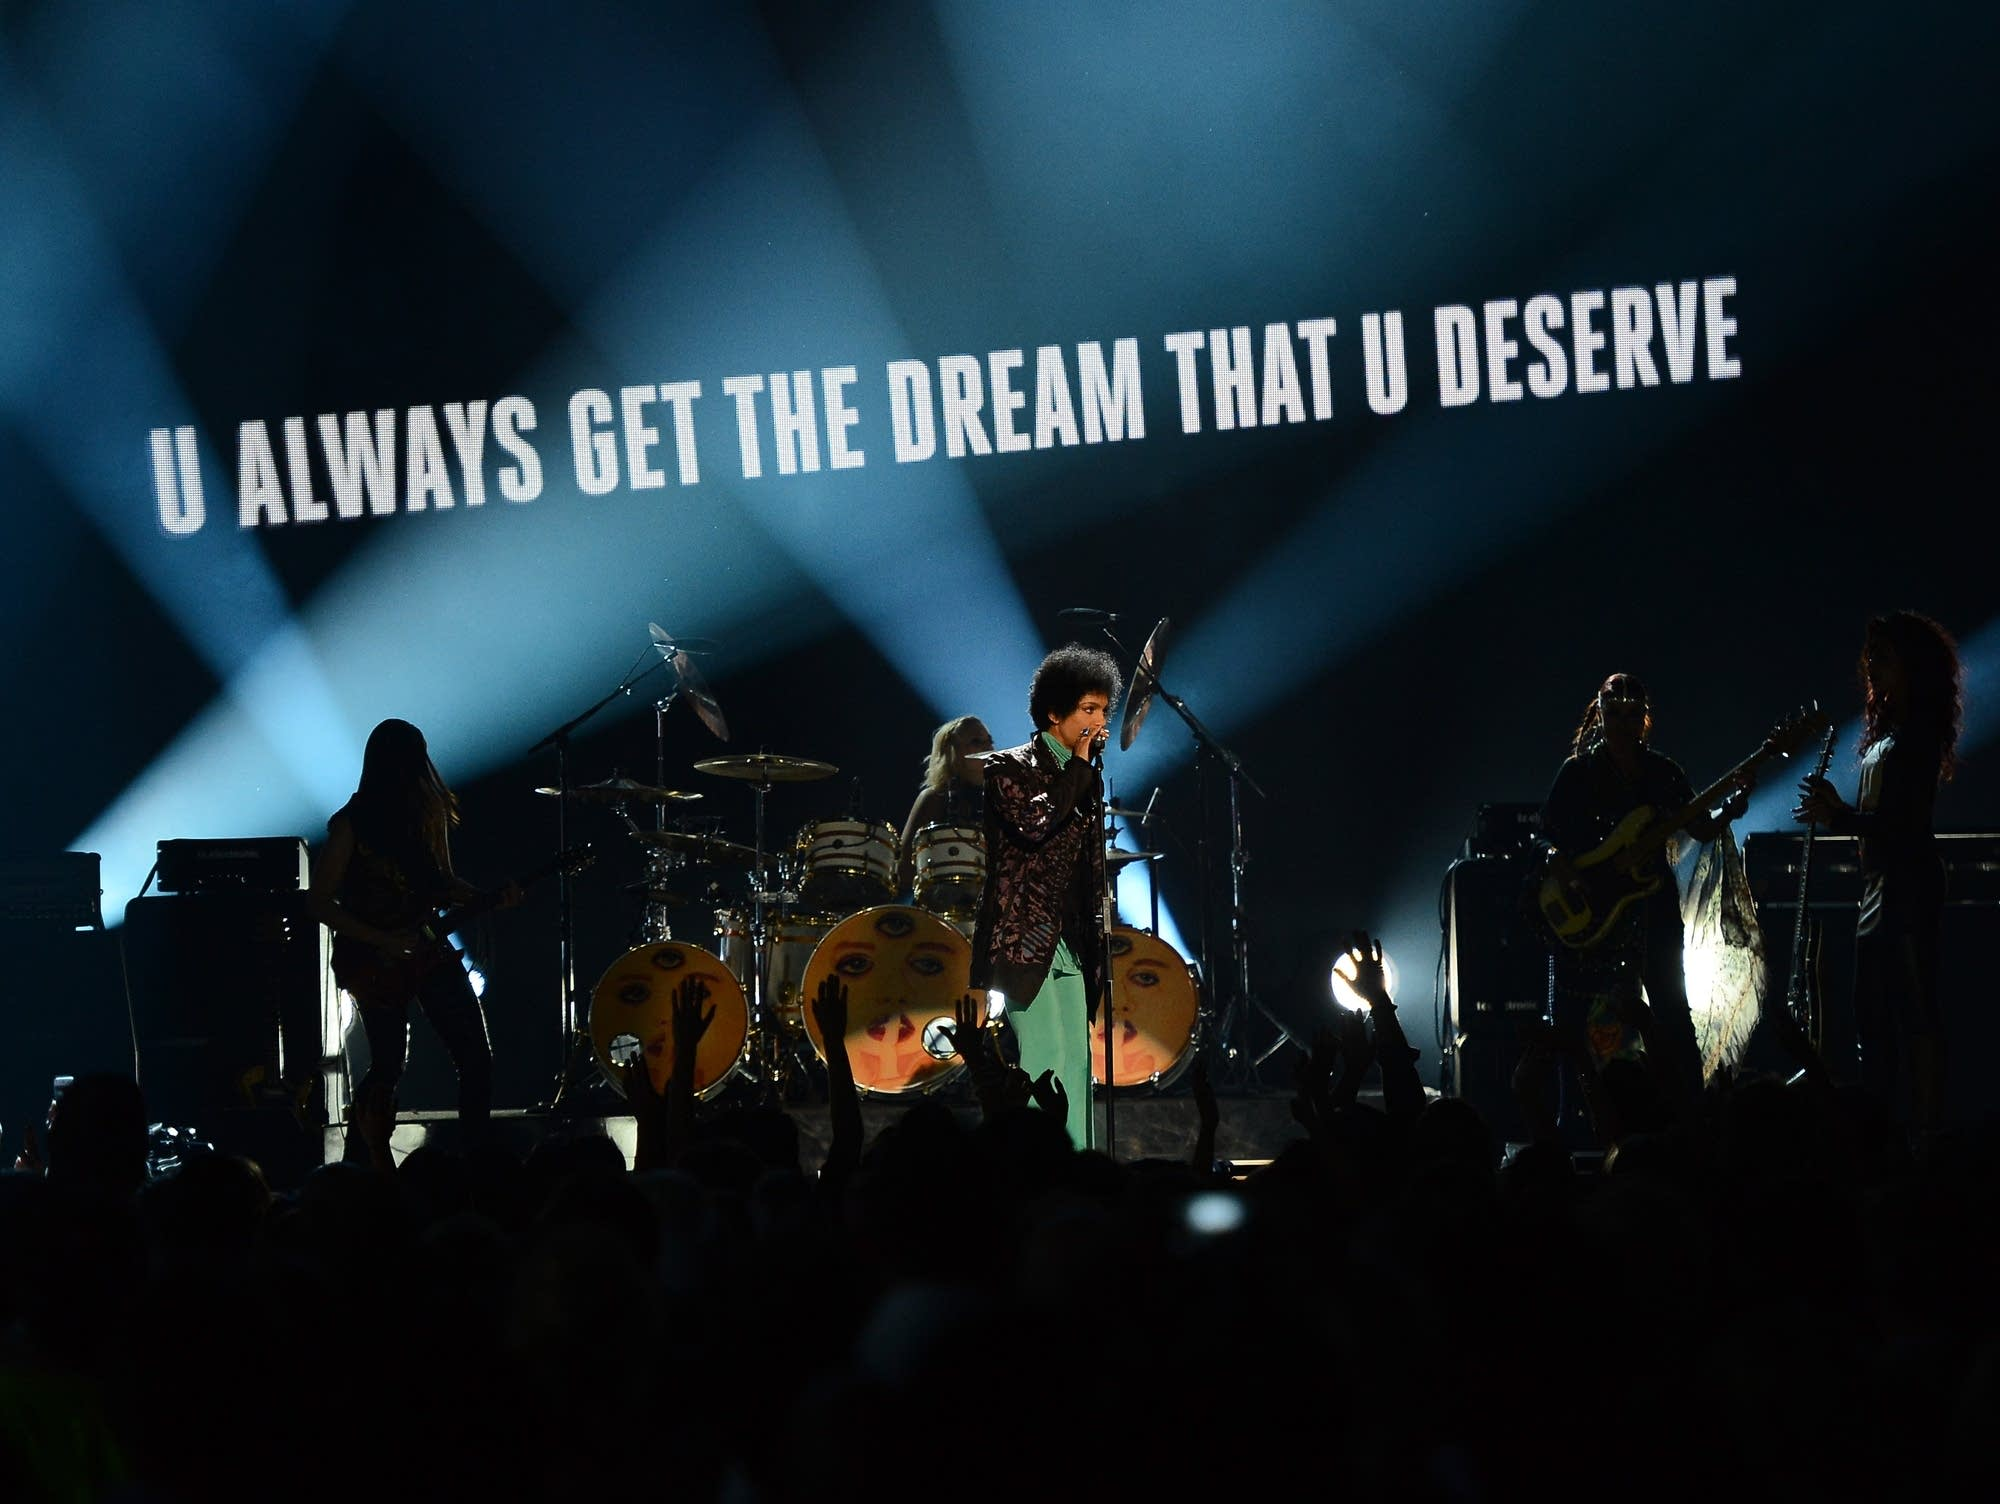 Prince and 3RDEYEGIRL perform at the 2013 Billboard Music Awards.